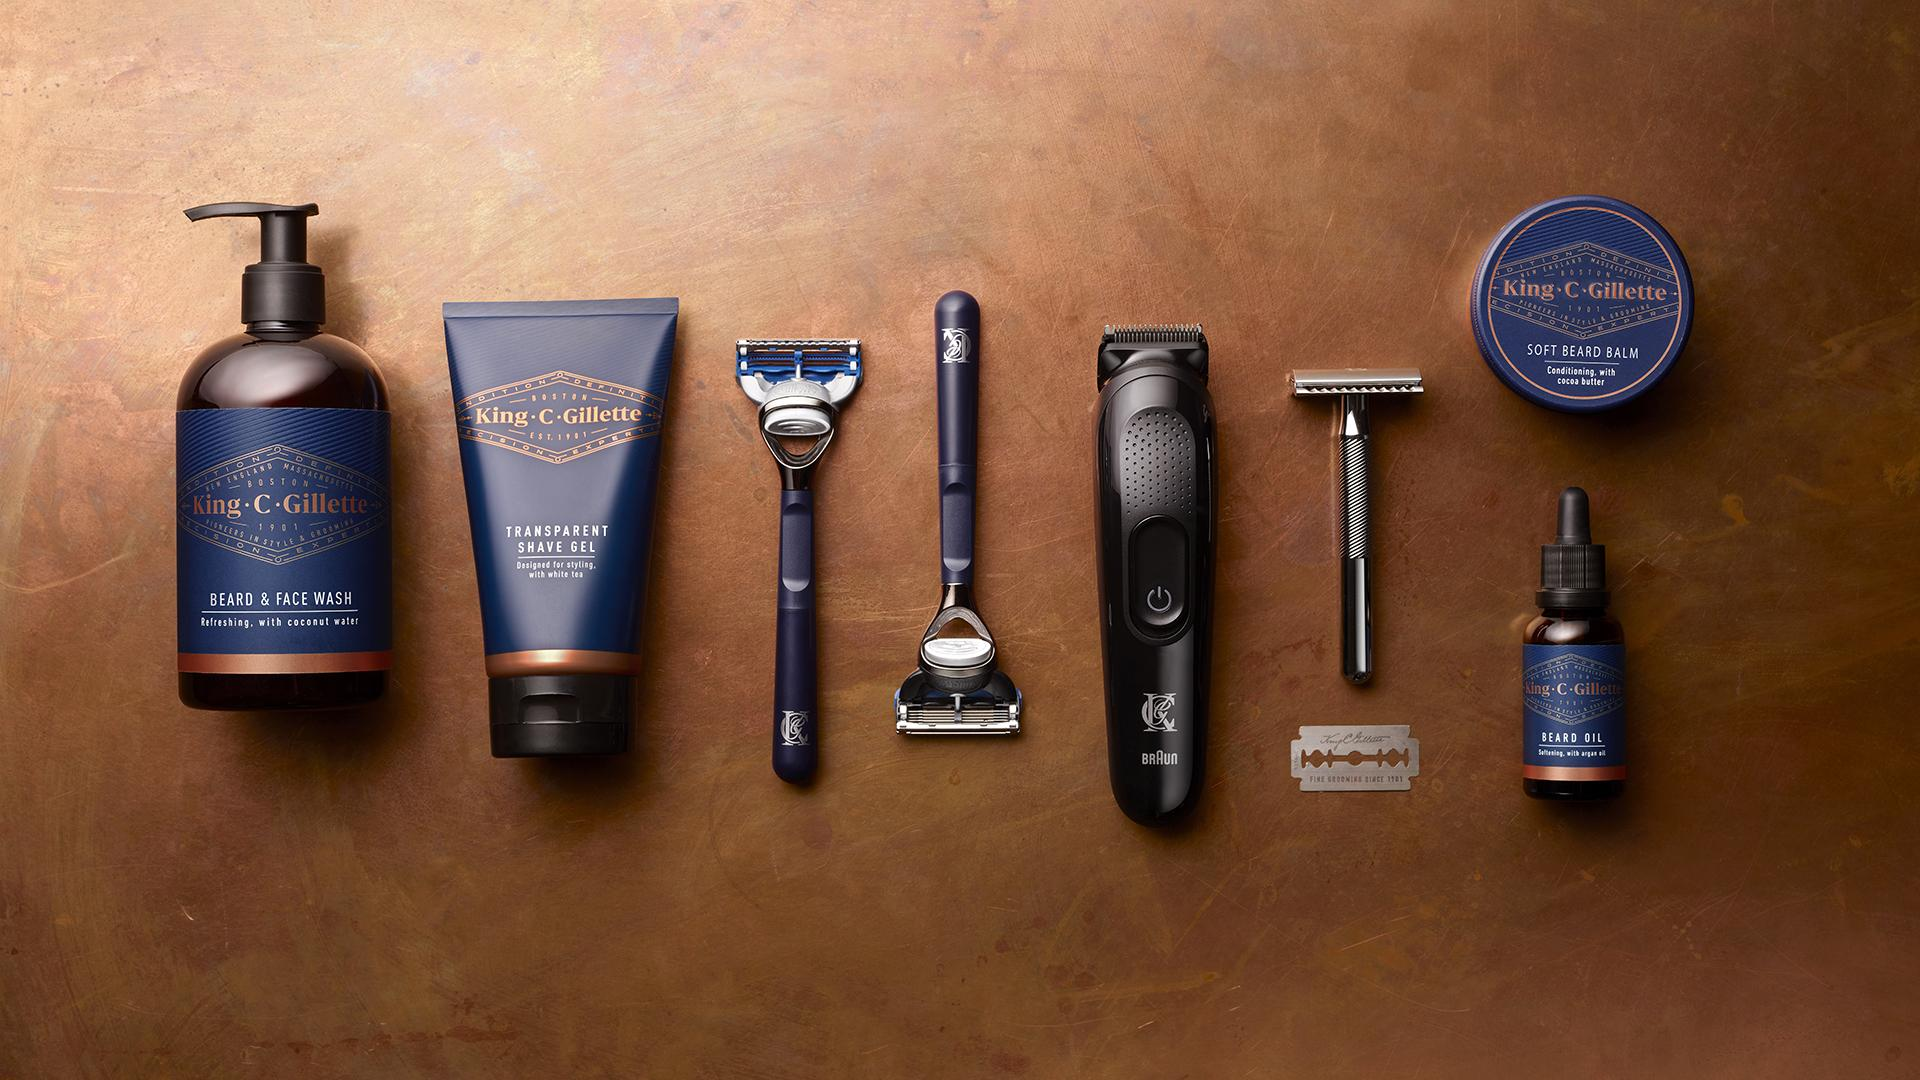 King C Gillette Grooming Range